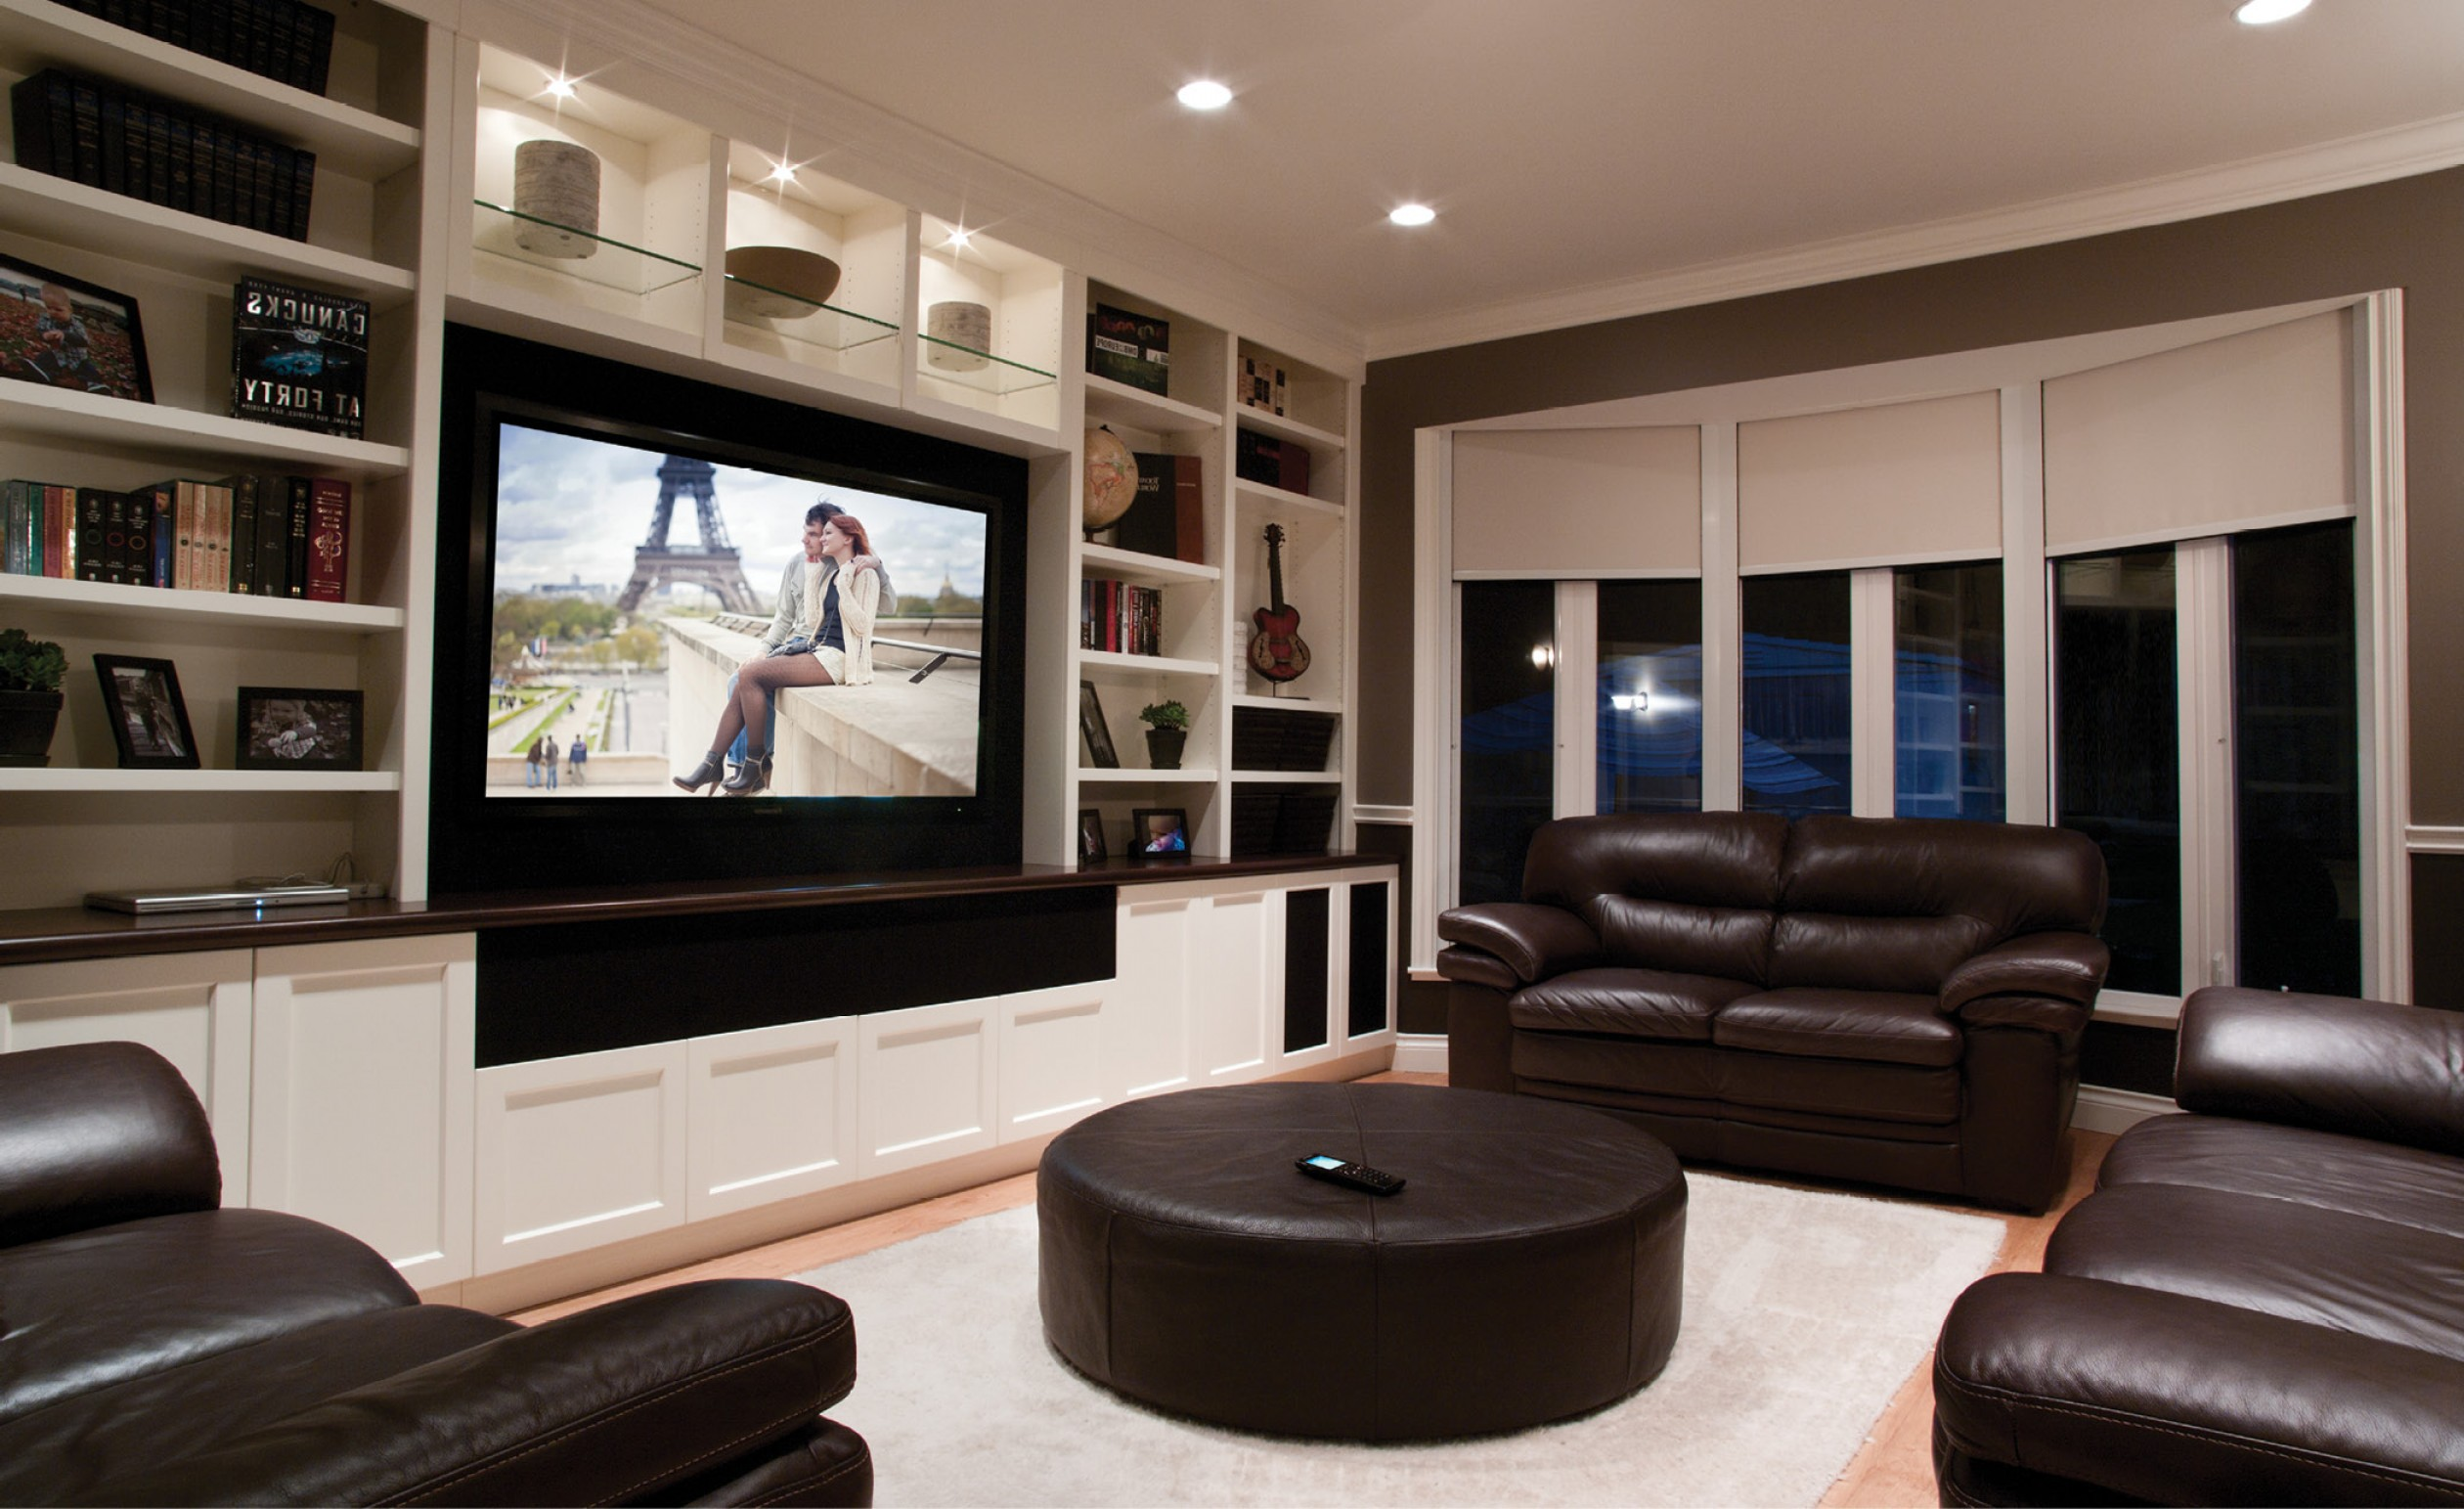 Living Room Theaters Fau | Living Room Theater Boca Raton Purchase Tickets | Movies Boca Raton